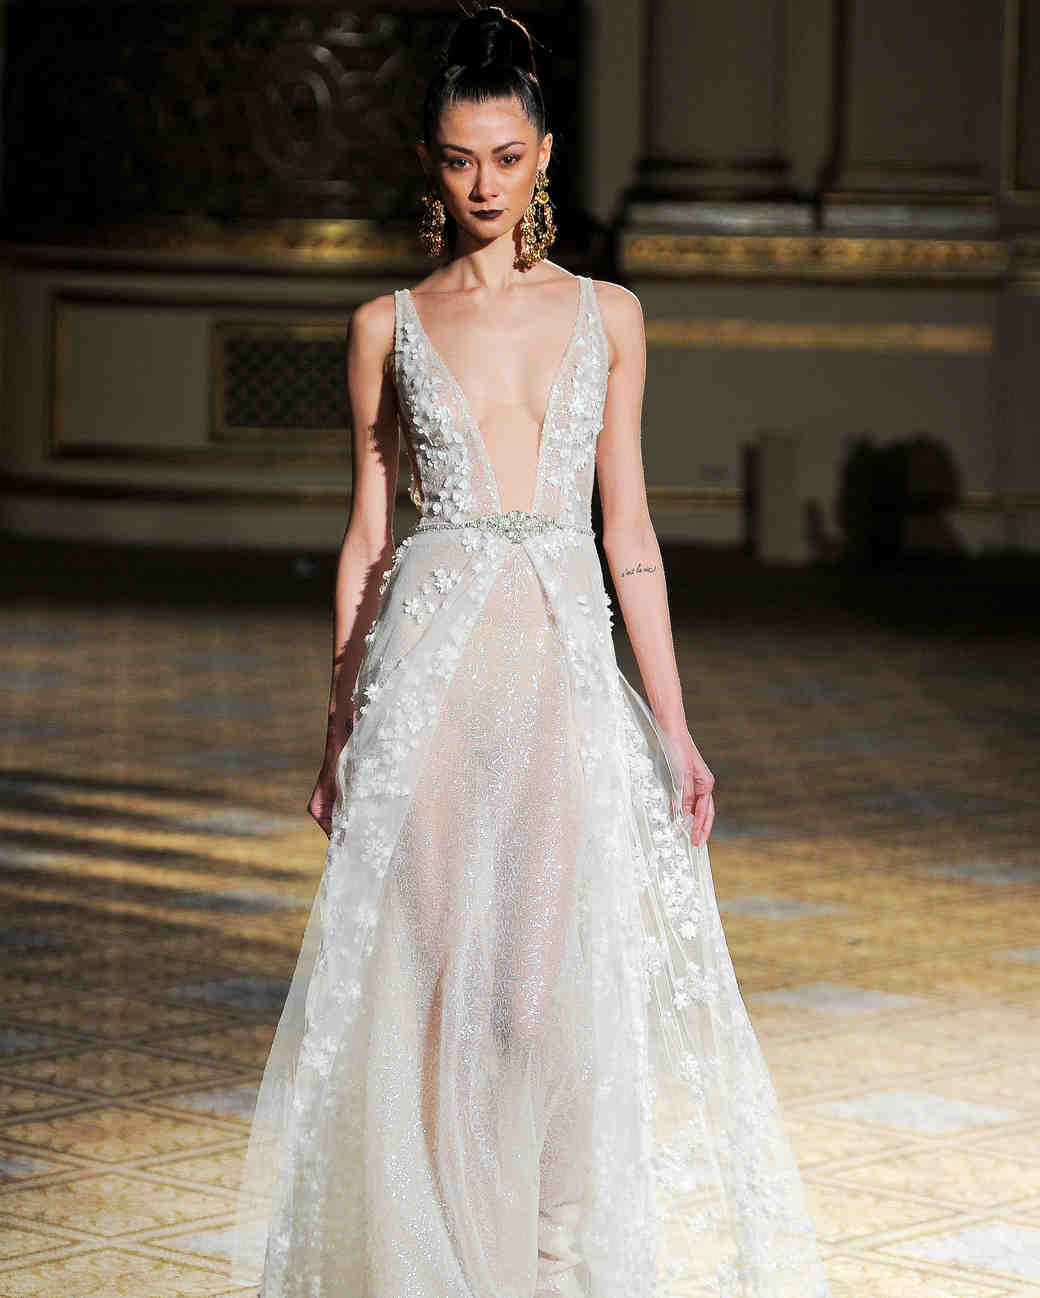 berta v-neck flowers detail wedding dress spring 2018